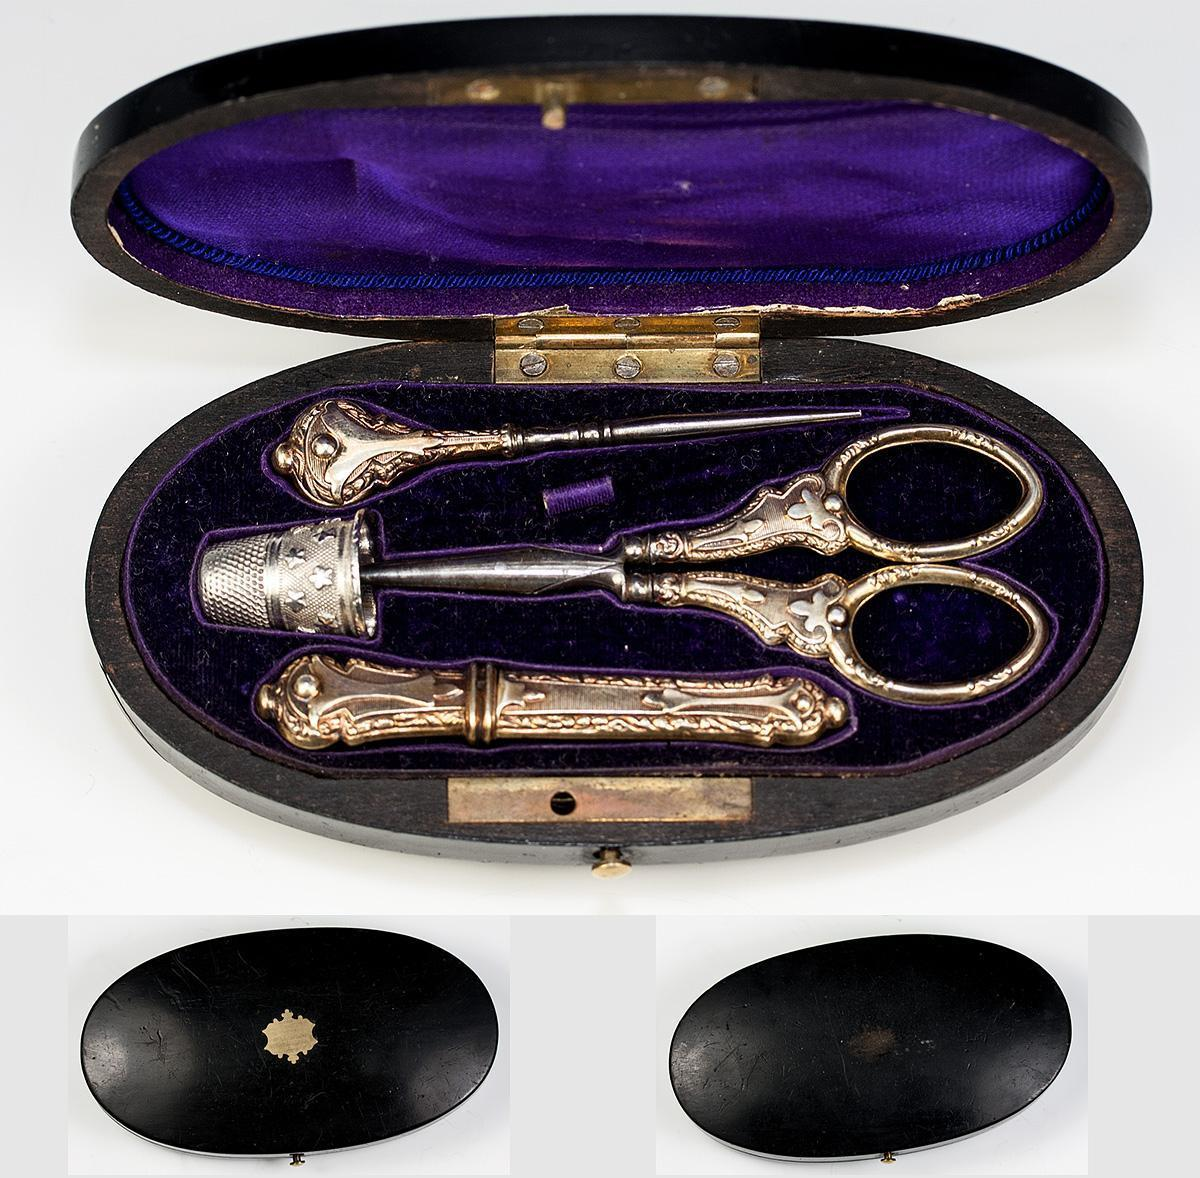 Antique French Sterling Silver Sewing Set in Etui, Box, c.1850 - 1870, 18k Vermeil Scissors, Needle Case, Thimble, Stiletto